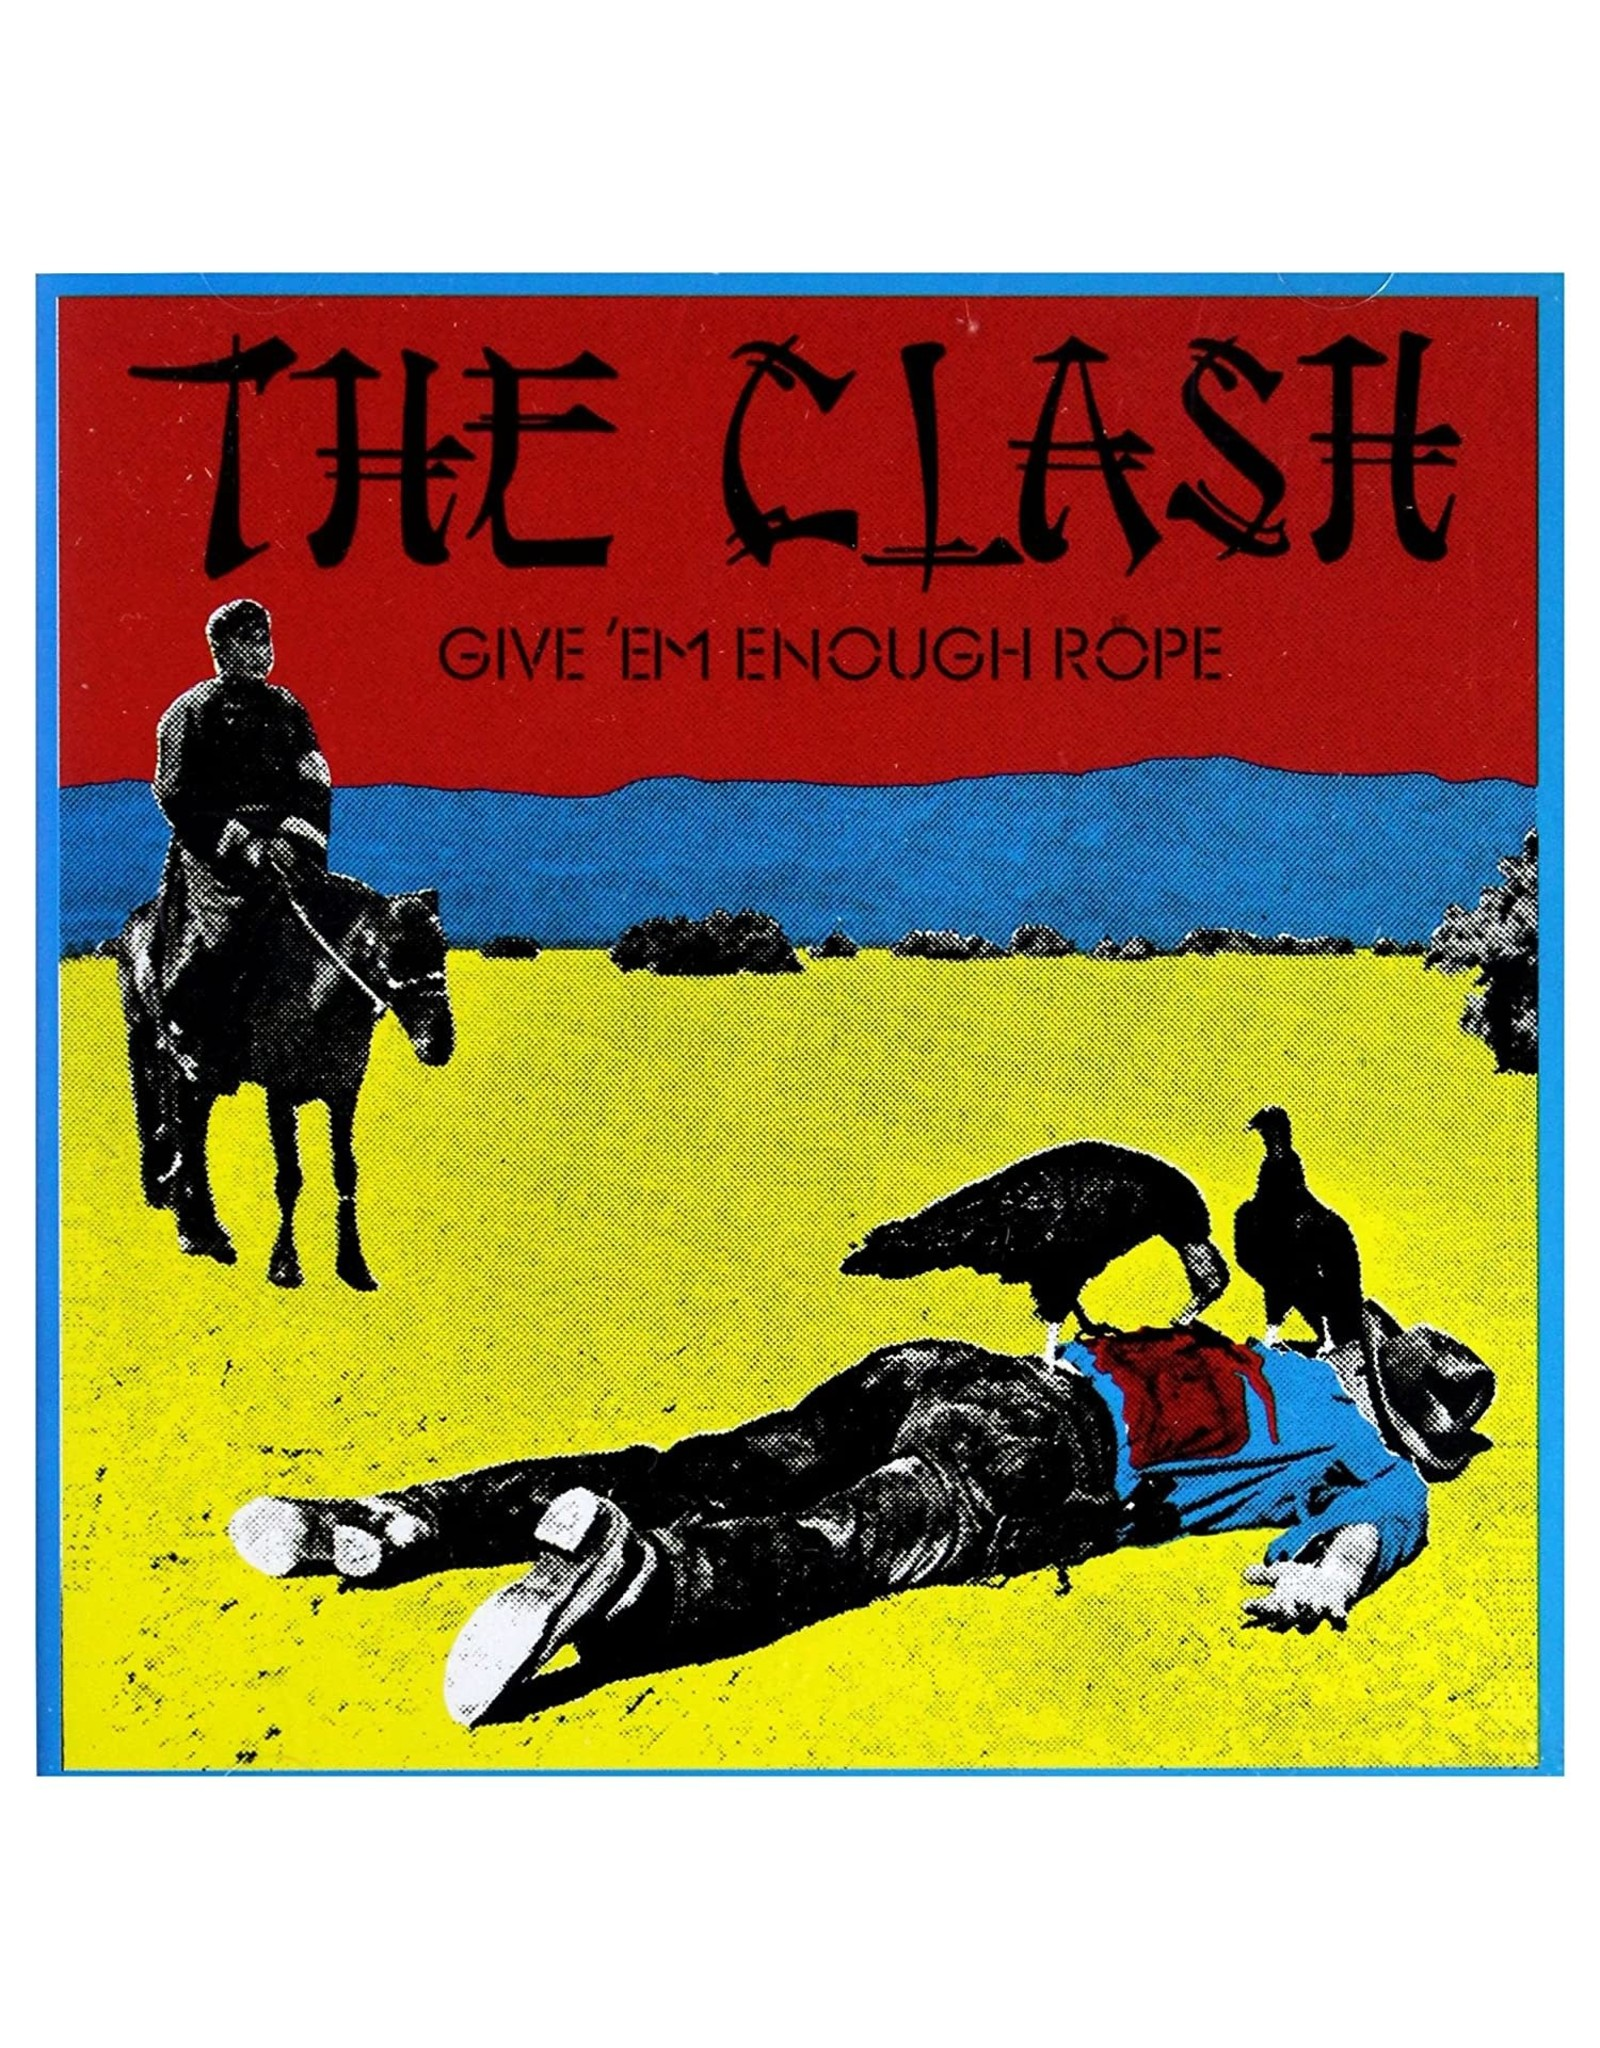 Clash, The - Give 'Em Enough Rope LP